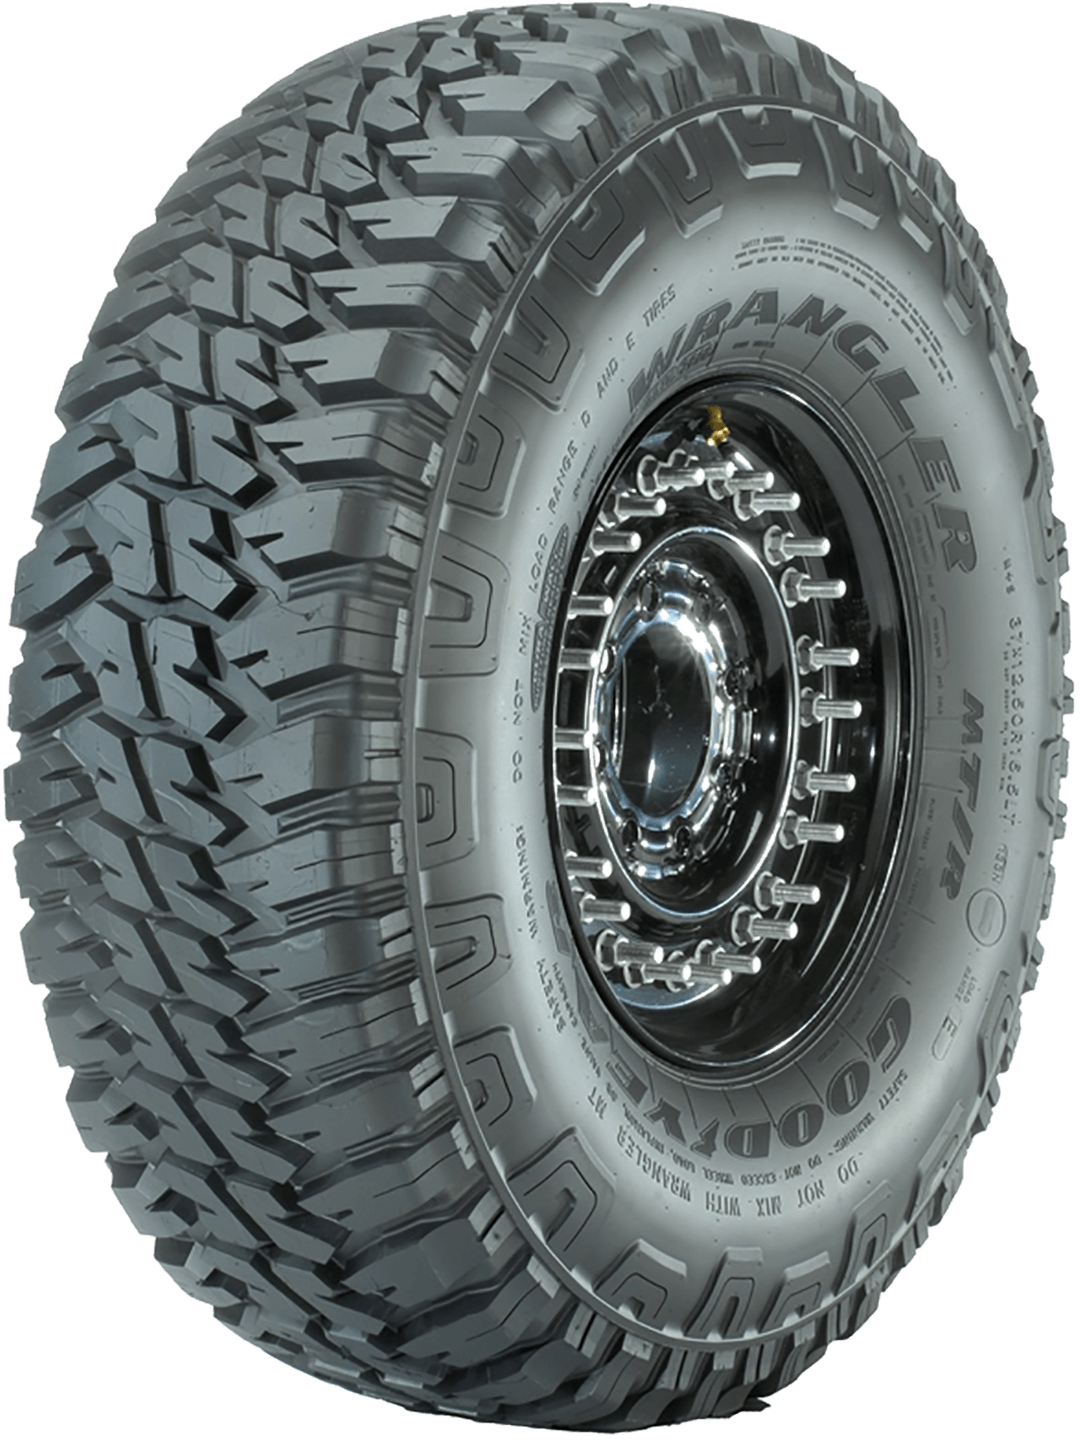 Military Tires | Goodyear Government Sales | military surplus hummer tires